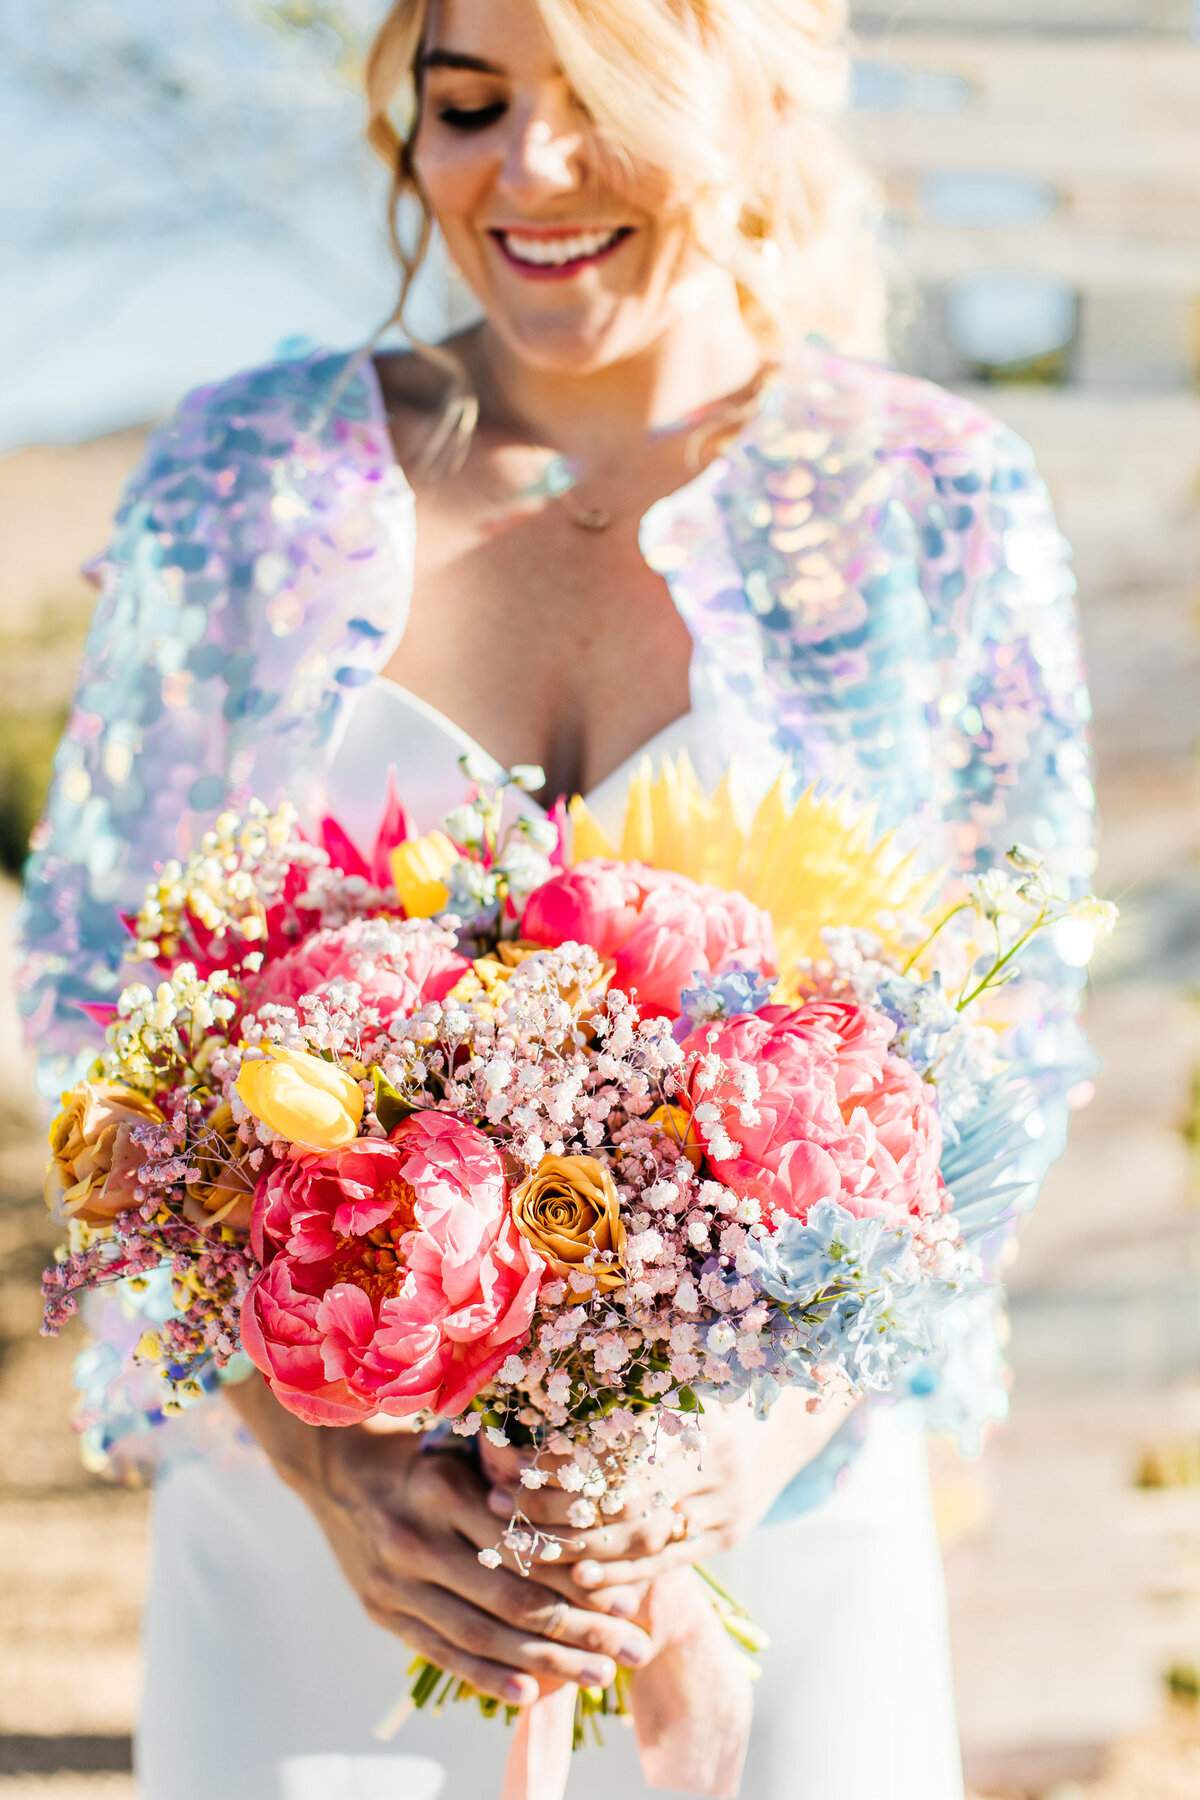 colorful-joshua-tree-elopement-inspiration-joshua-tree-wedding-photographer-palm-springs-wedding-photographer-erin-marton-photography-15